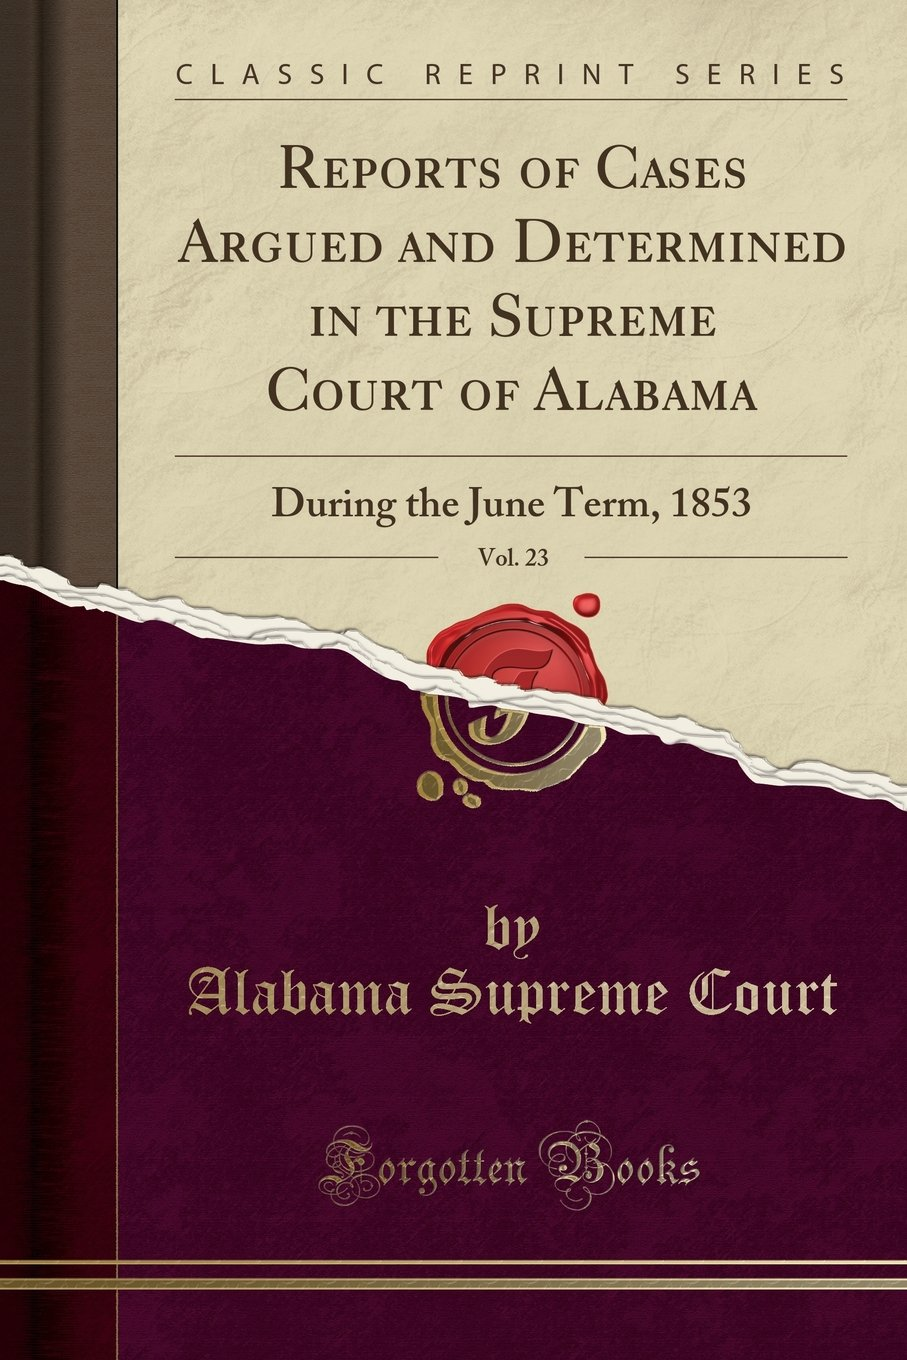 Read Online Reports of Cases Argued and Determined in the Supreme Court of Alabama, Vol. 23: During the June Term, 1853 (Classic Reprint) ebook